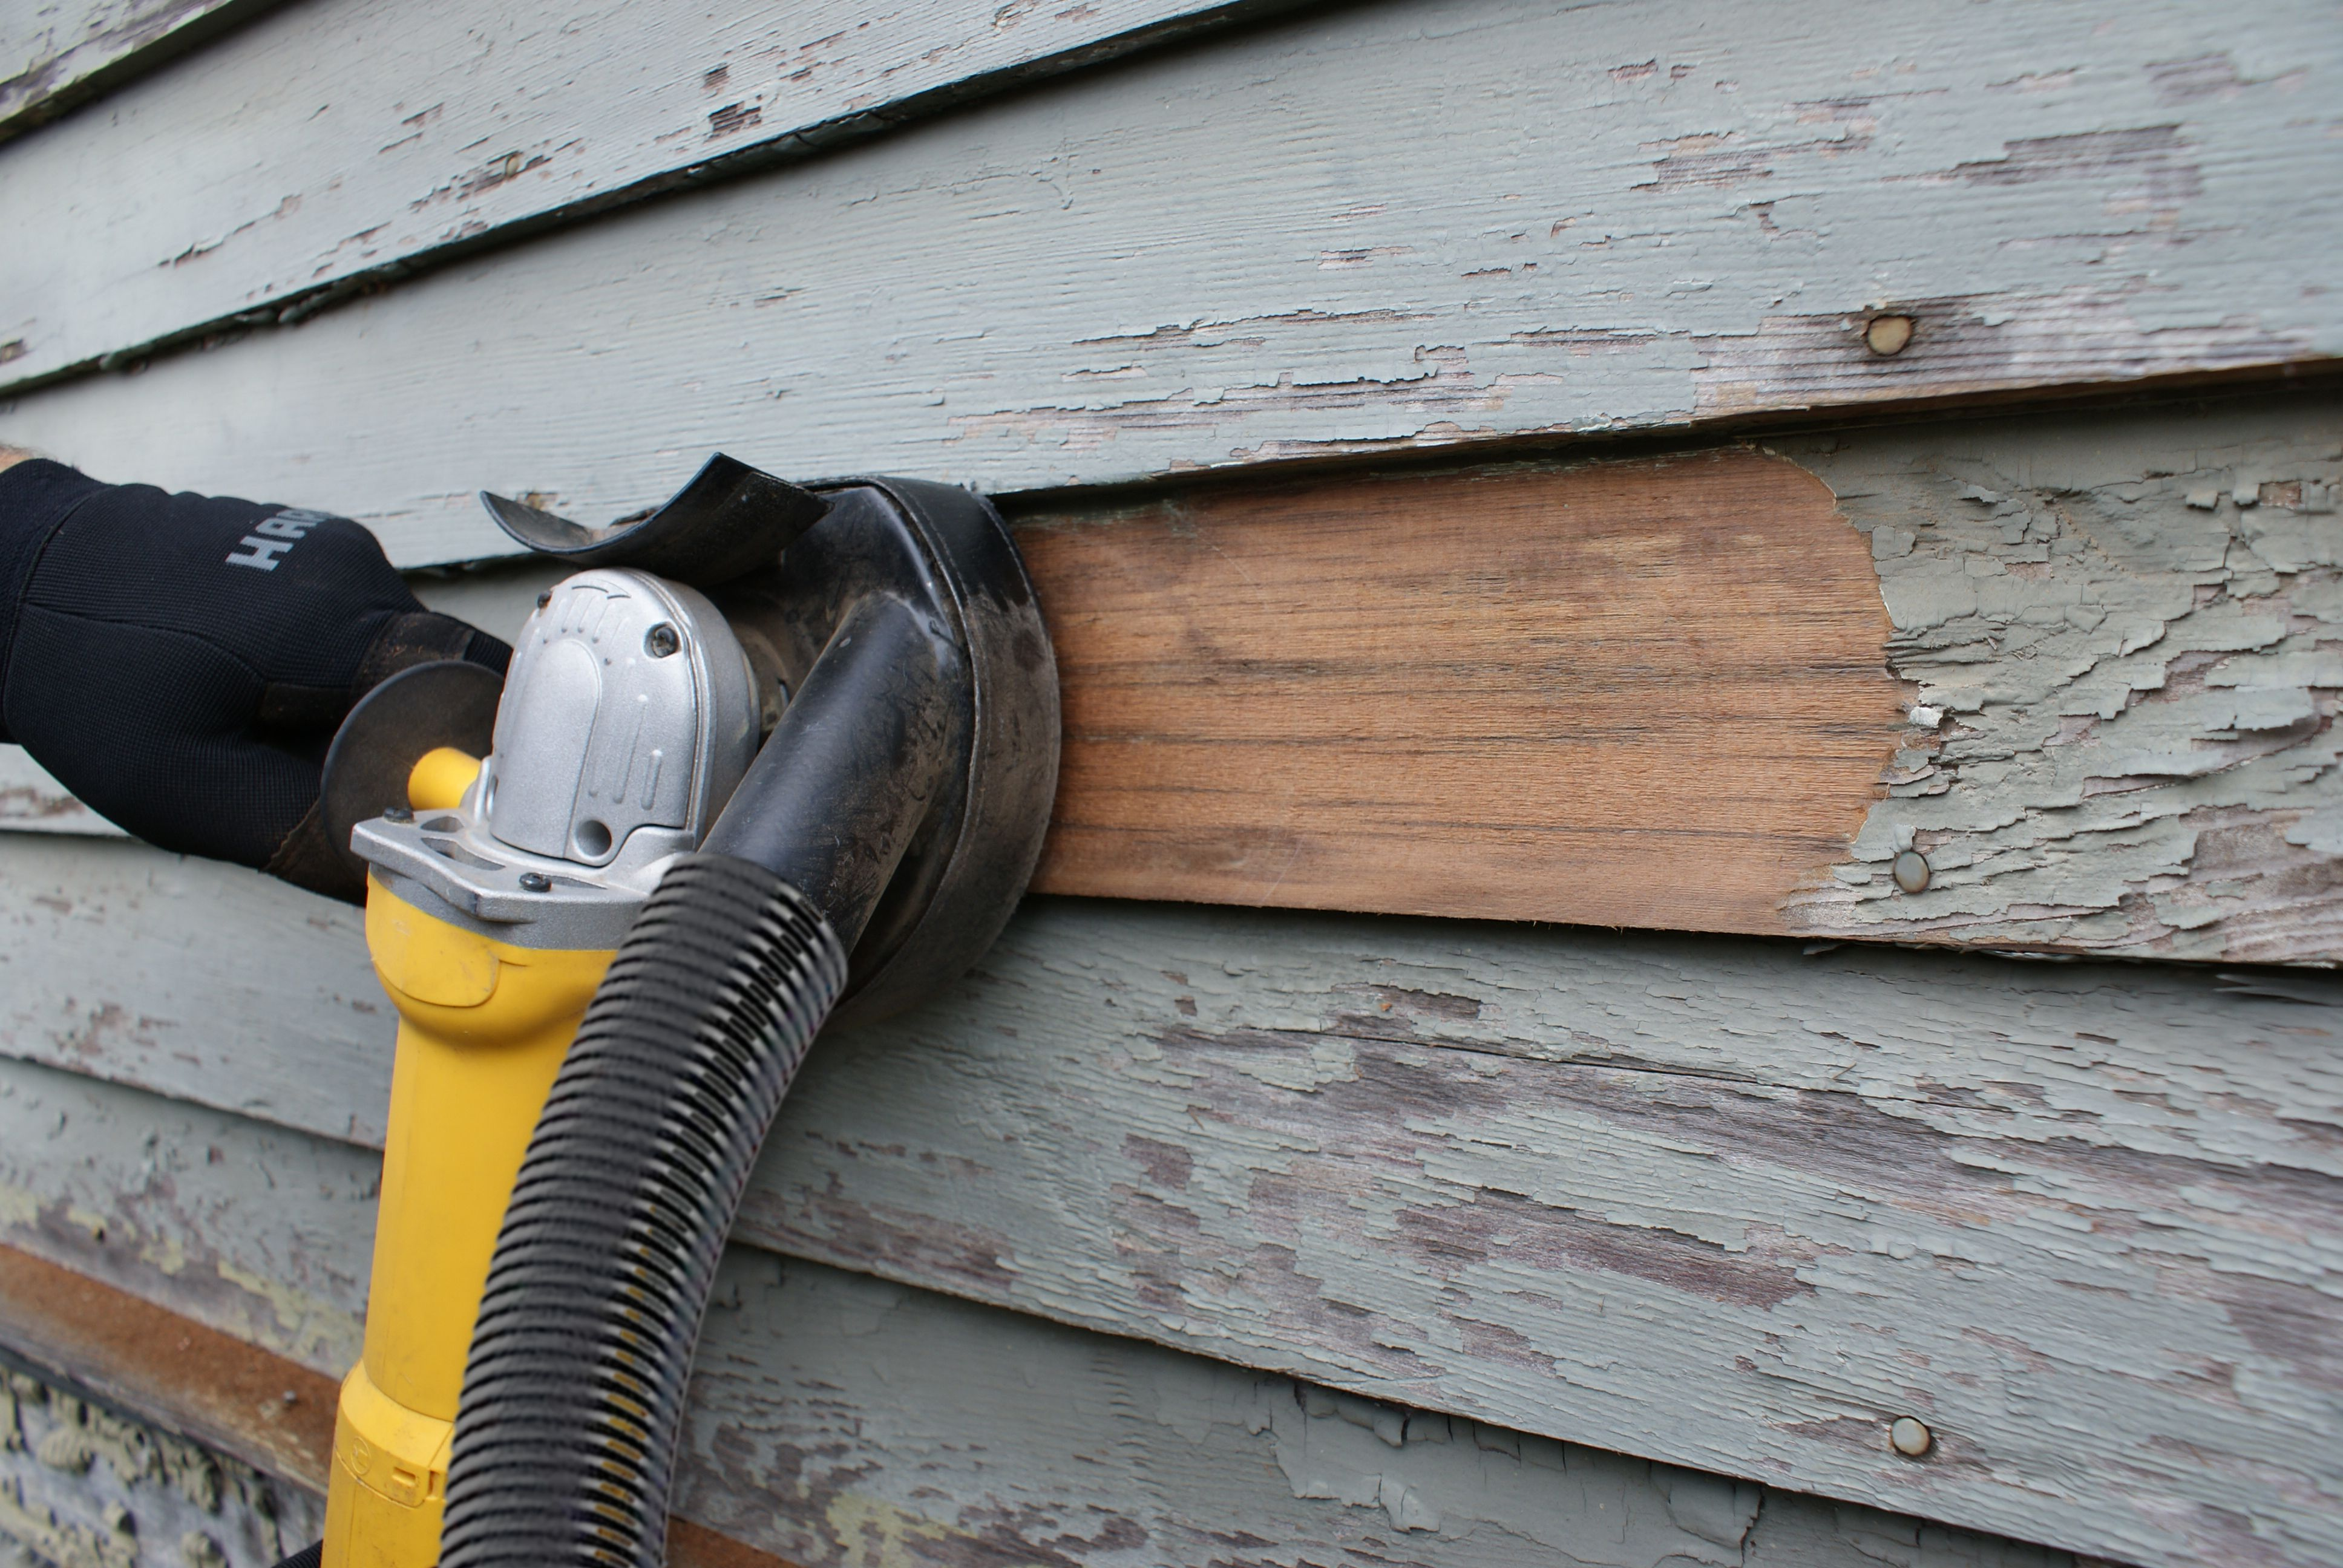 Wood Decks And Siding Tool Diamabrush Siding Tools Removing Paint From Wood Stripping Paint From Wood